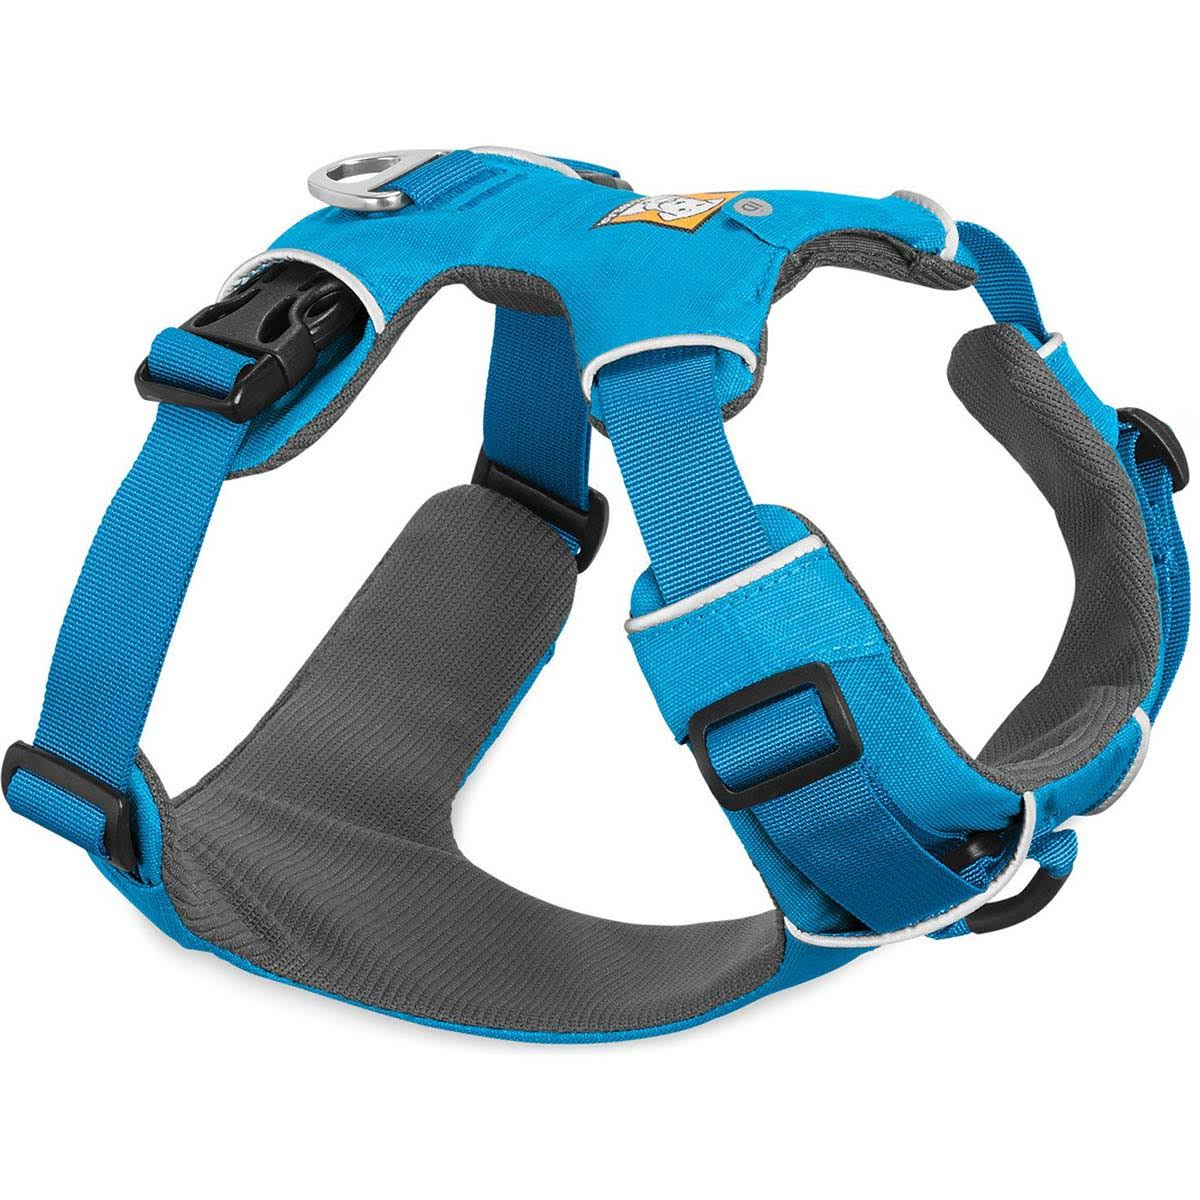 Ruffwear Front Range Harness - Geschirr Blue Dusk, Small